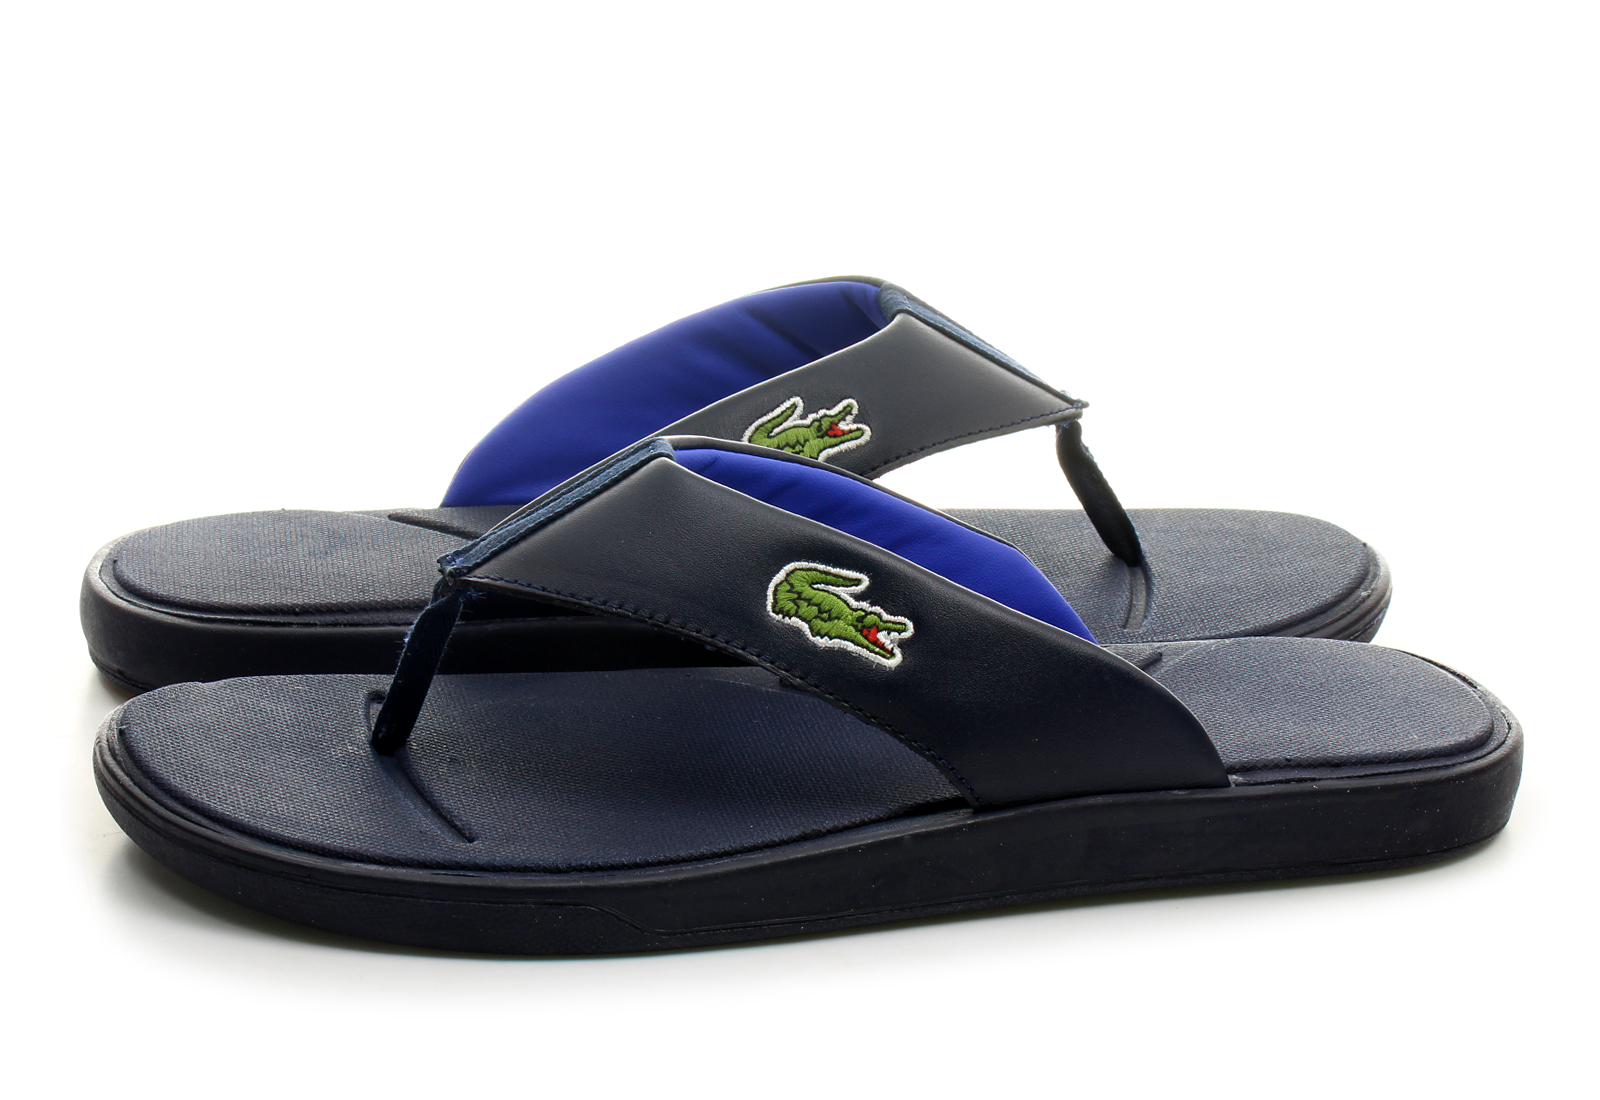 Lacoste Shoes Black And Green